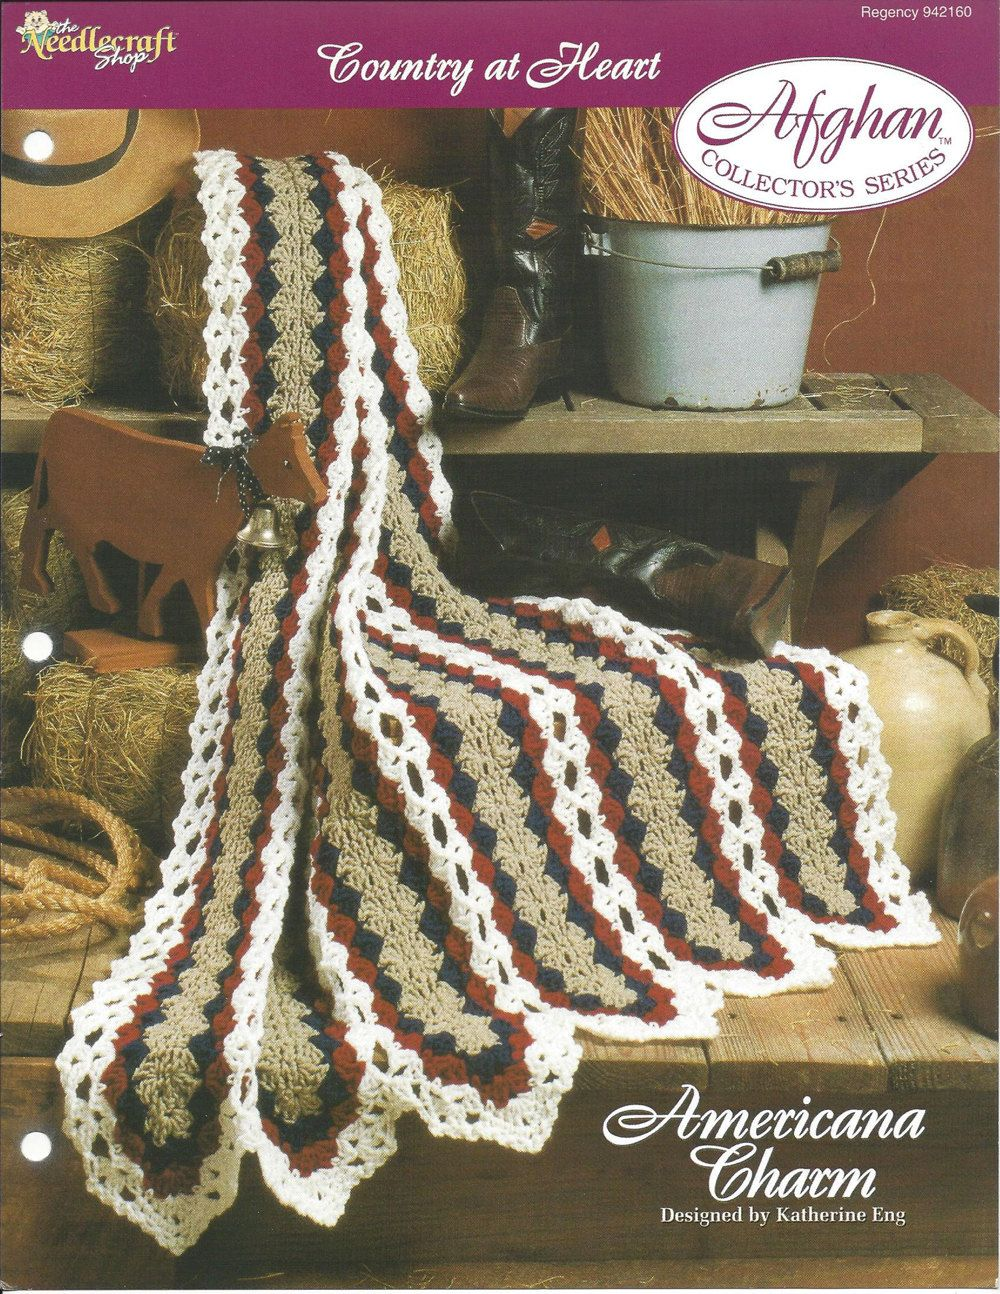 Americana Charm Afghan Collector's Series by KnitKnacksCreations